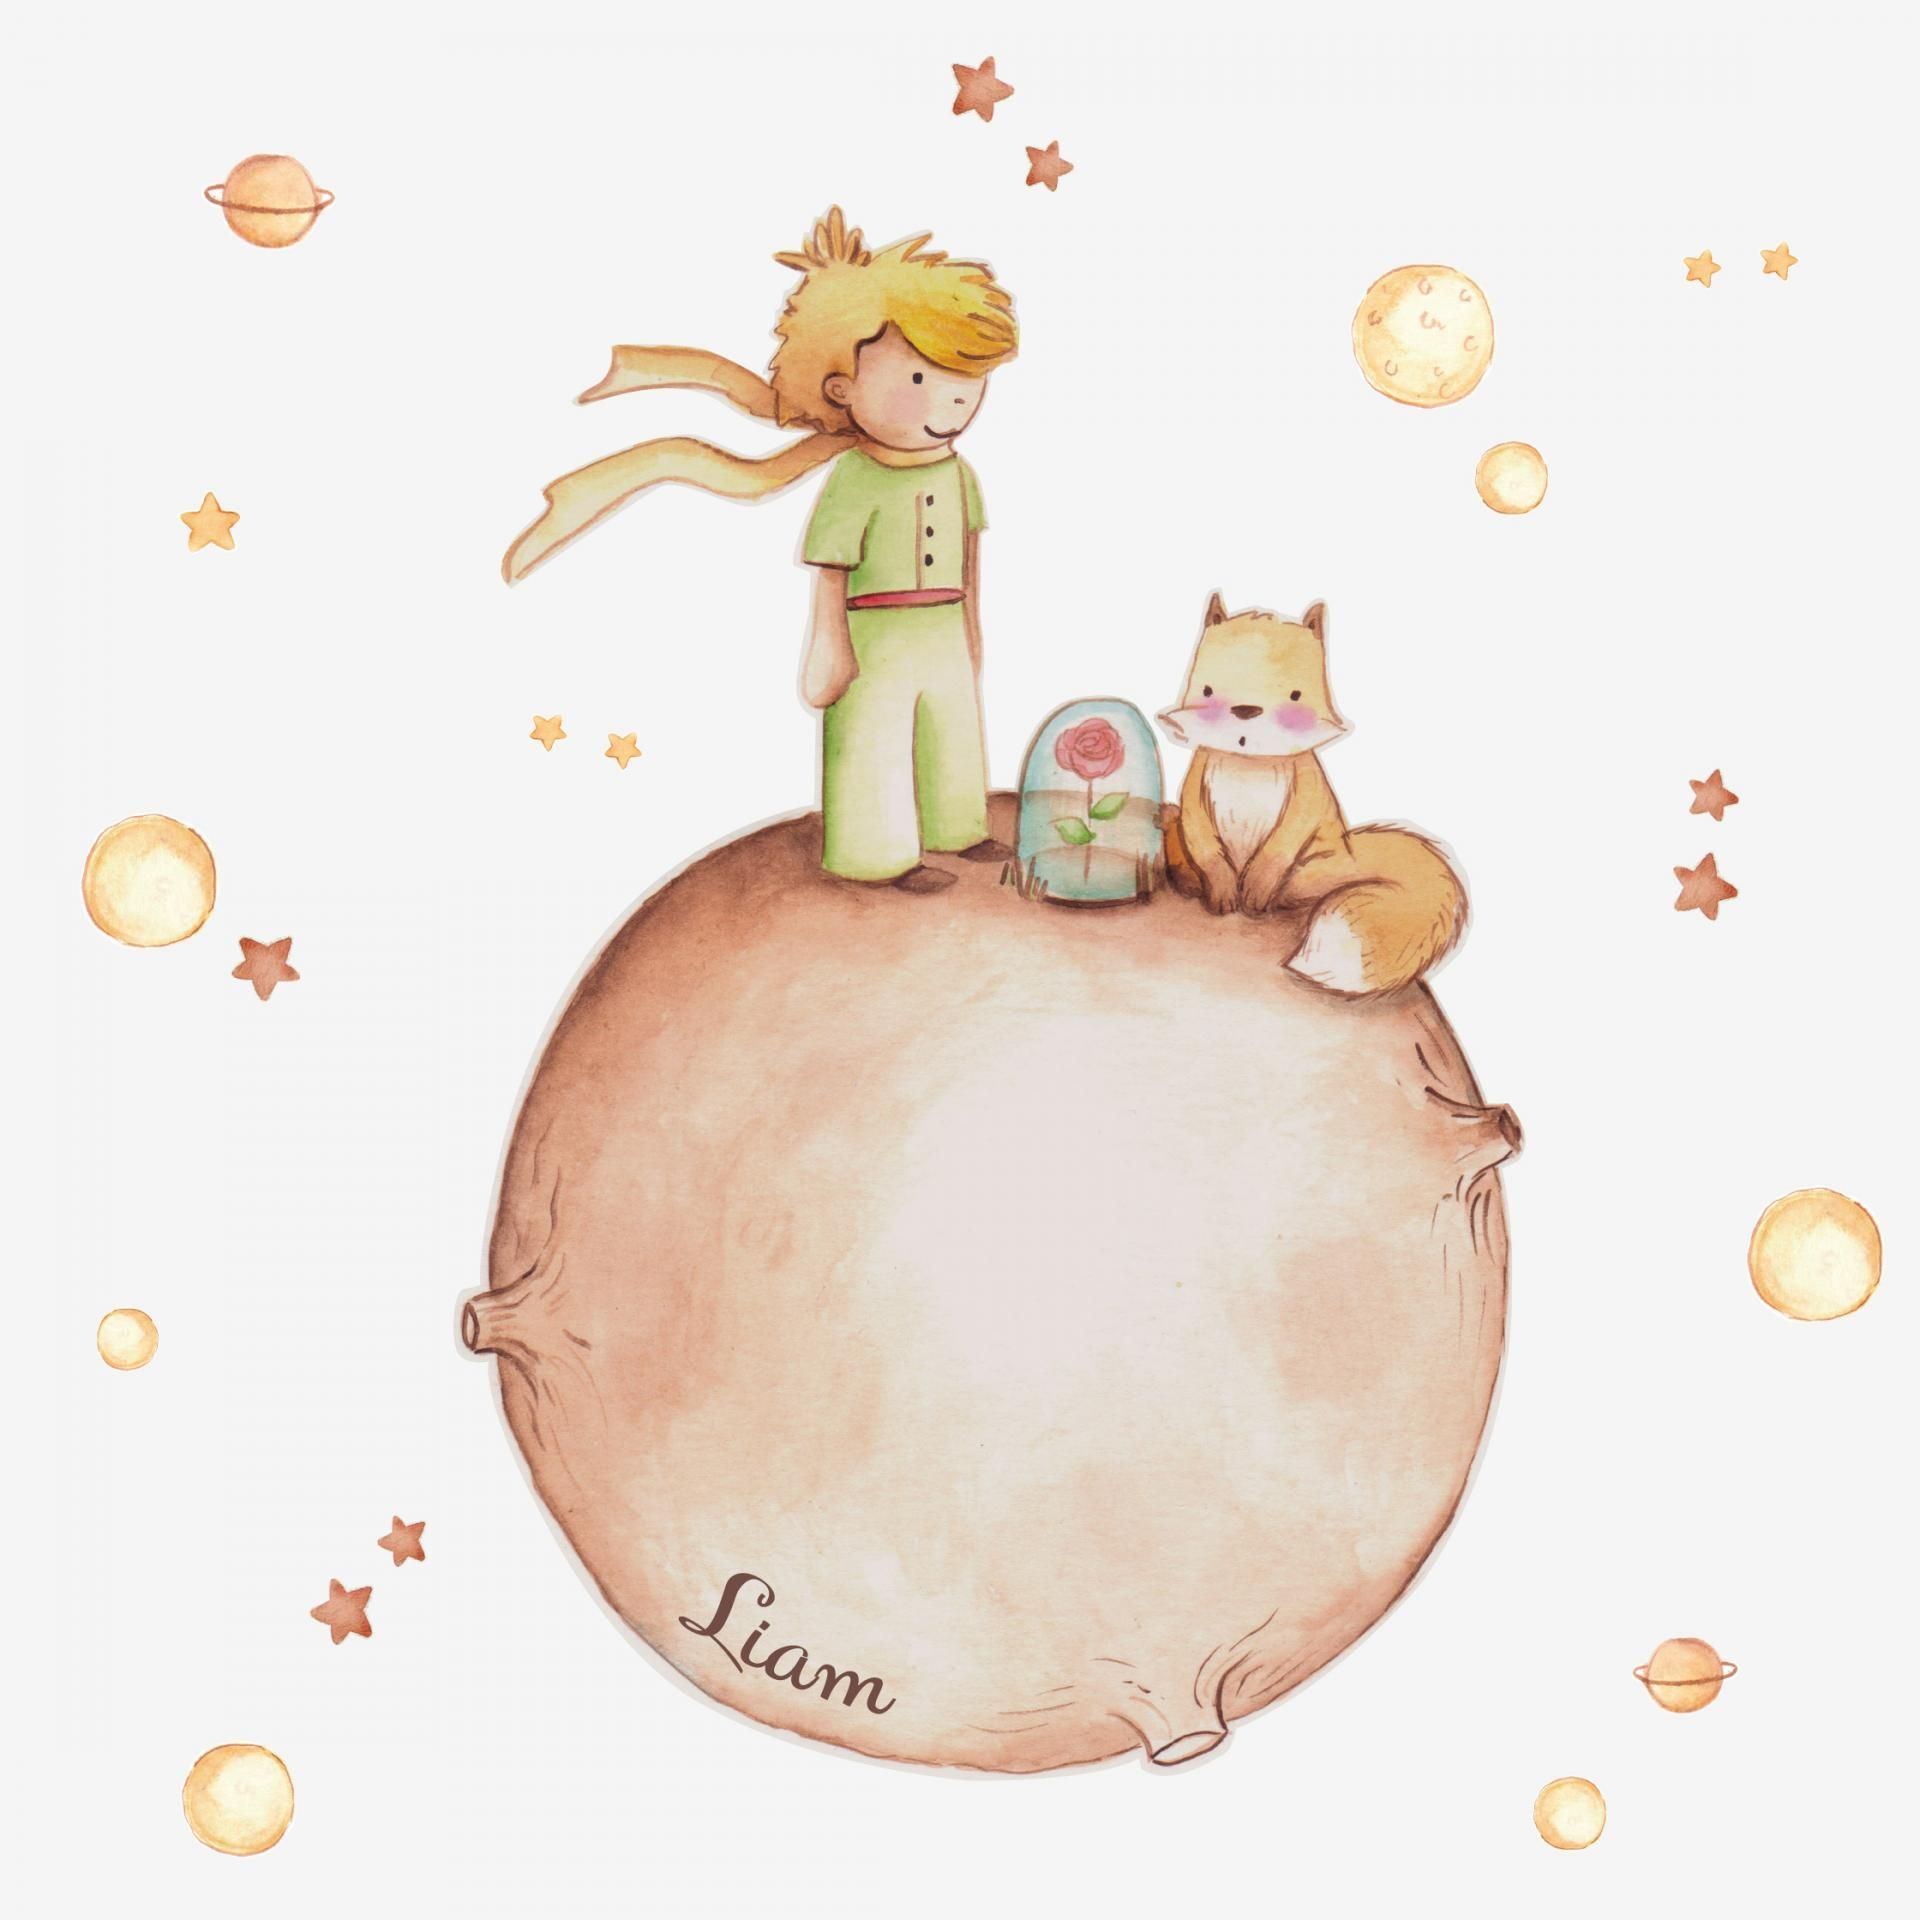 Vinilo Infantil El Principito Nursery Wall Decal Little Prince Wall Sticker Hand Painted The Little Prince Childrens Vinyl The Little Prince Illustration